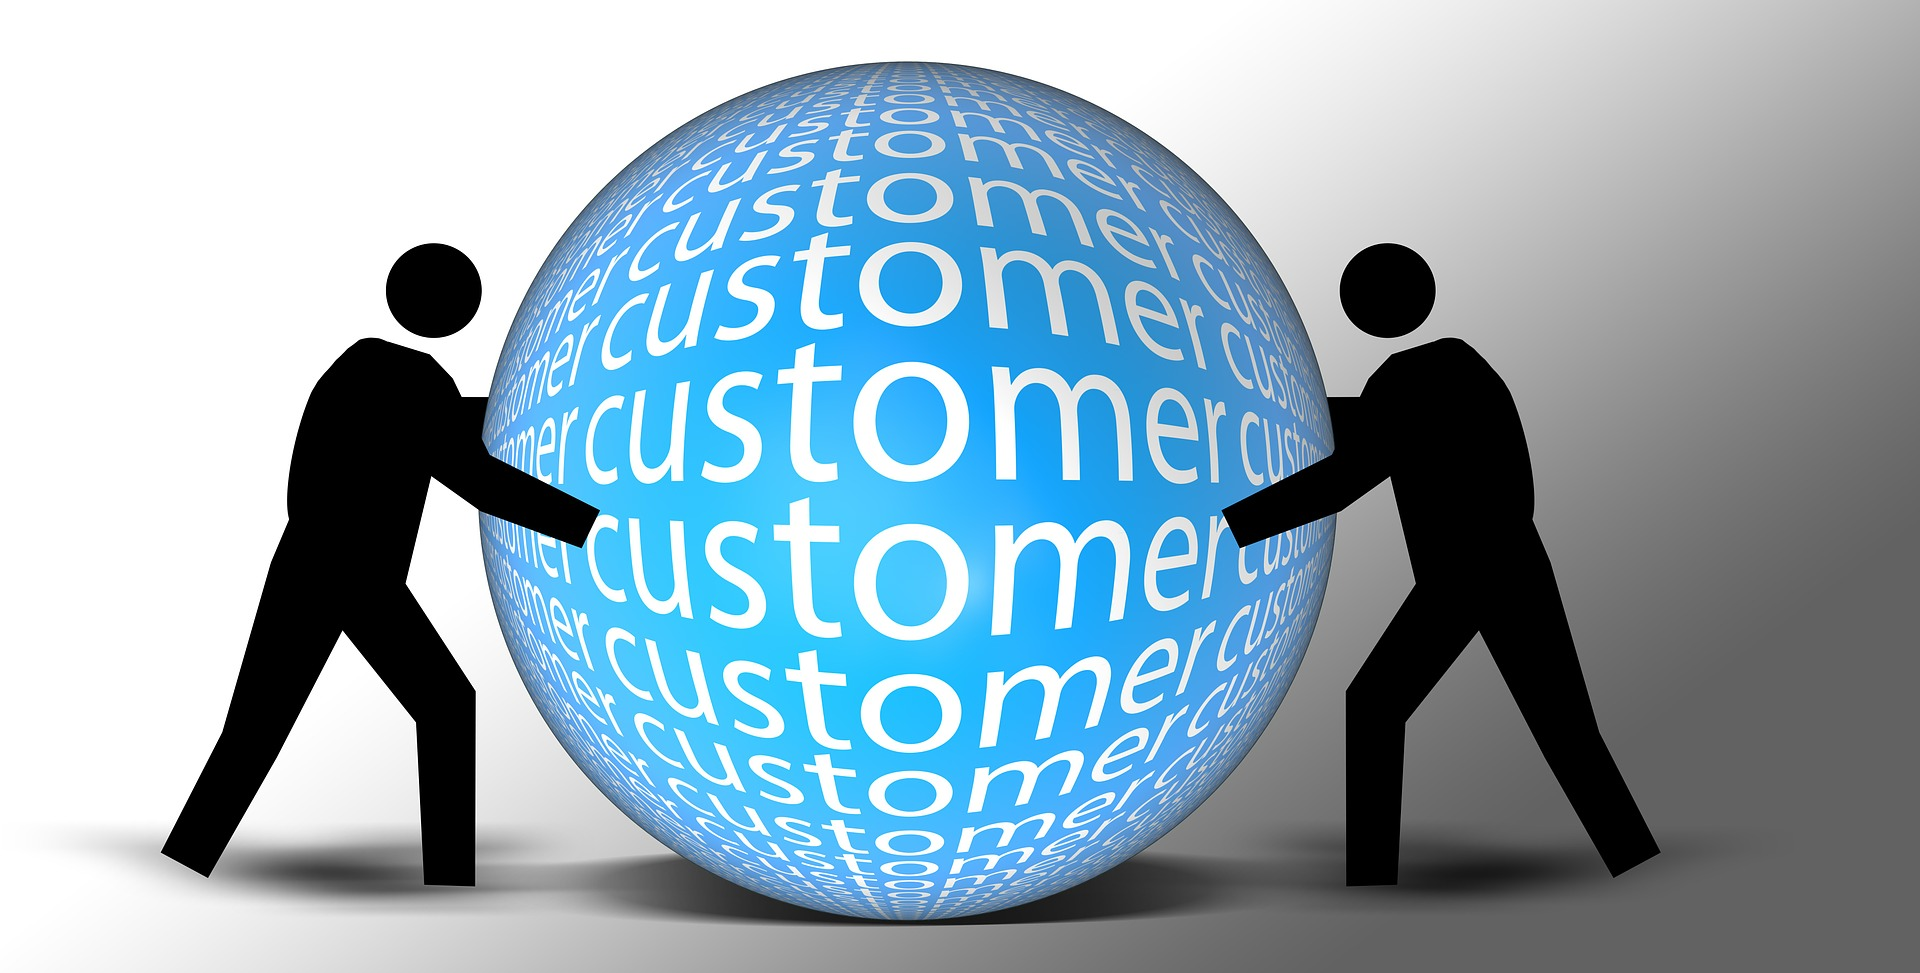 Why customer relationship is crucial for a business?